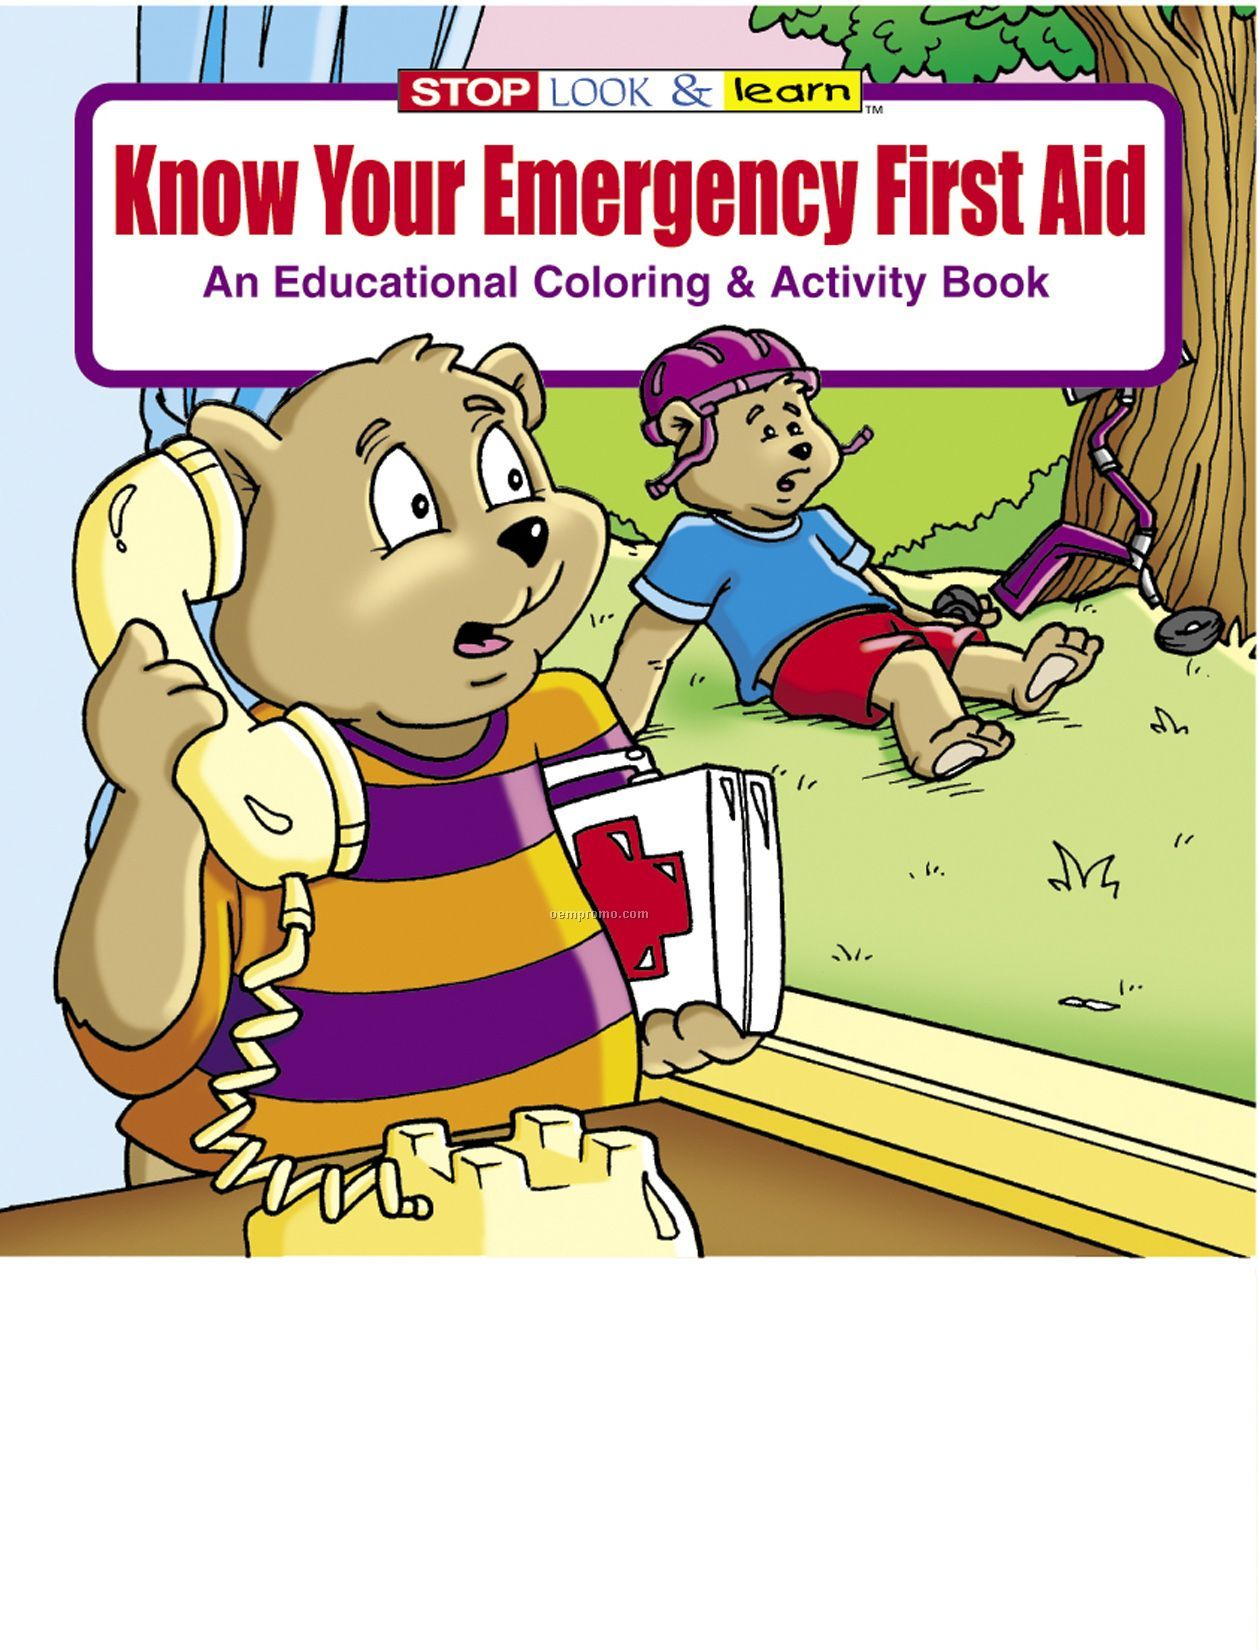 Know Your Emergency First Aid Coloring Book